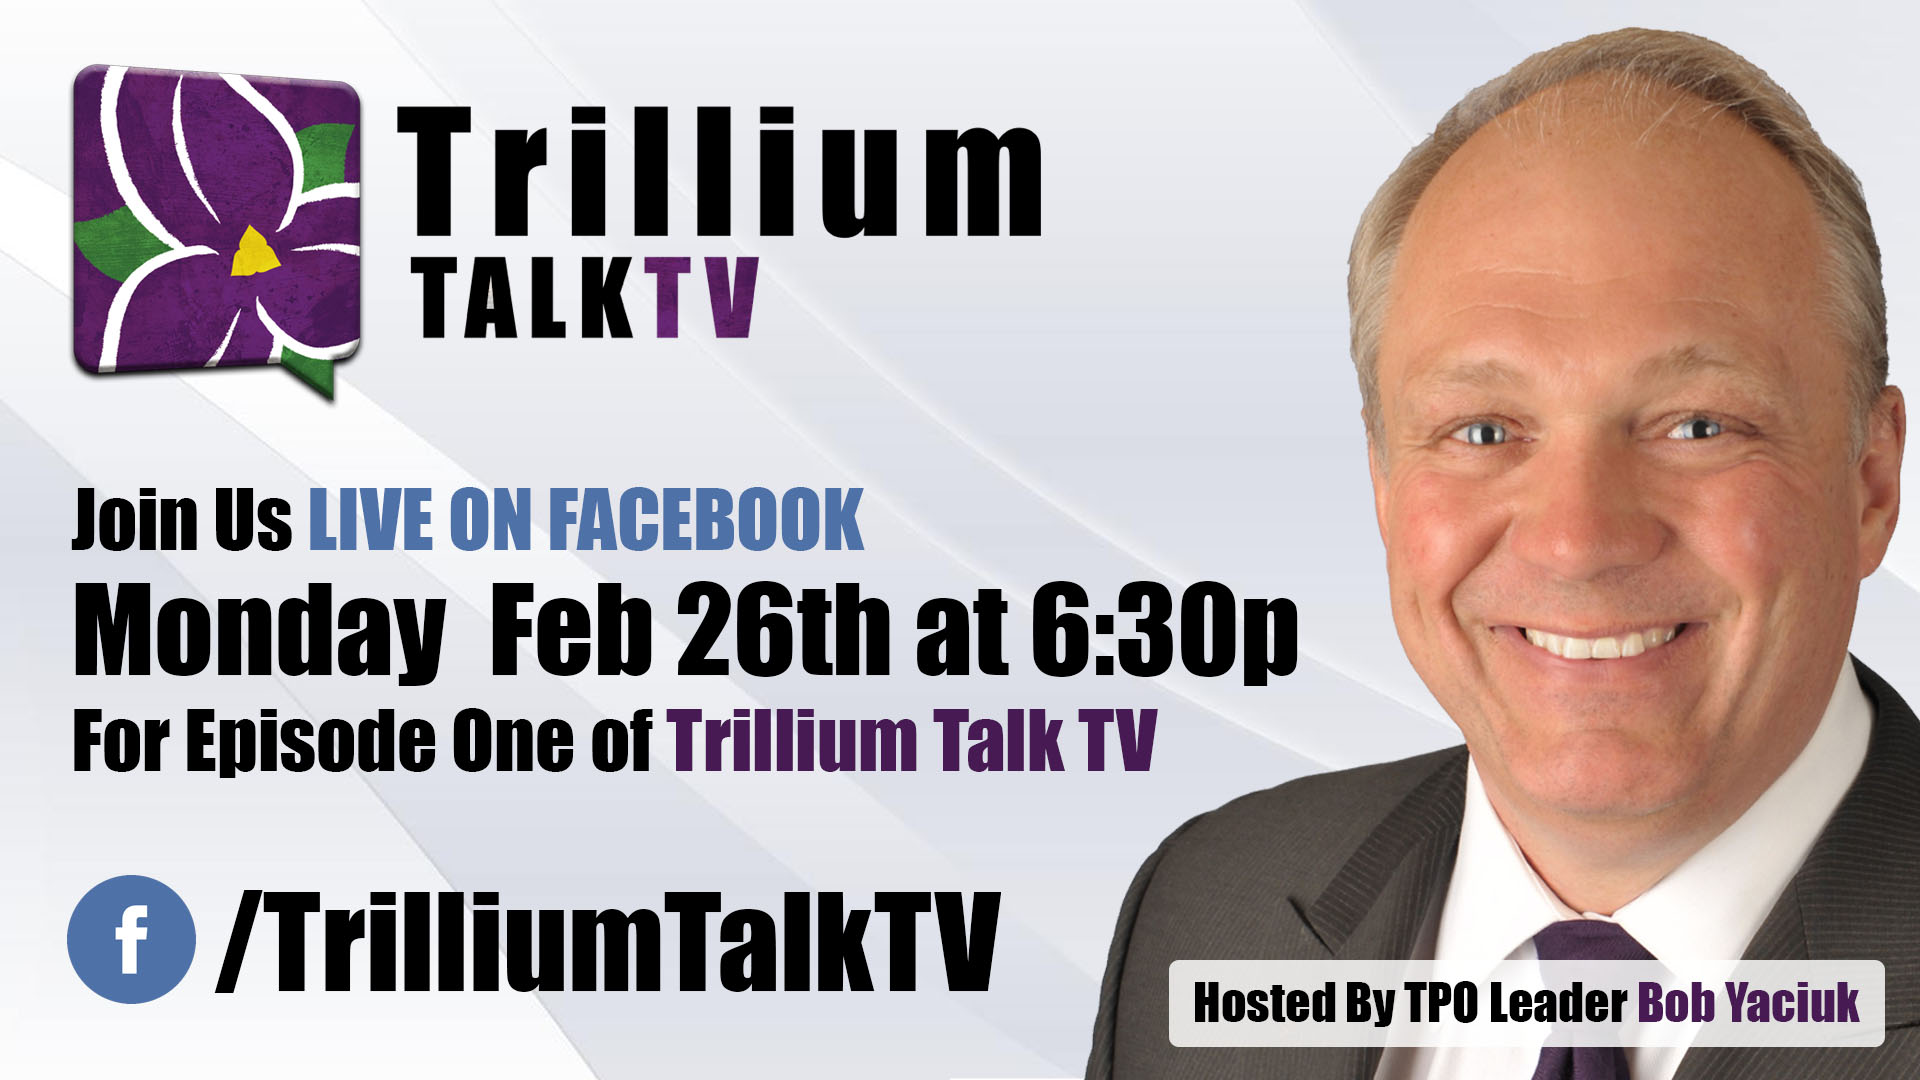 Trillium TalkTV Live with Bob Yaciuk, Leader